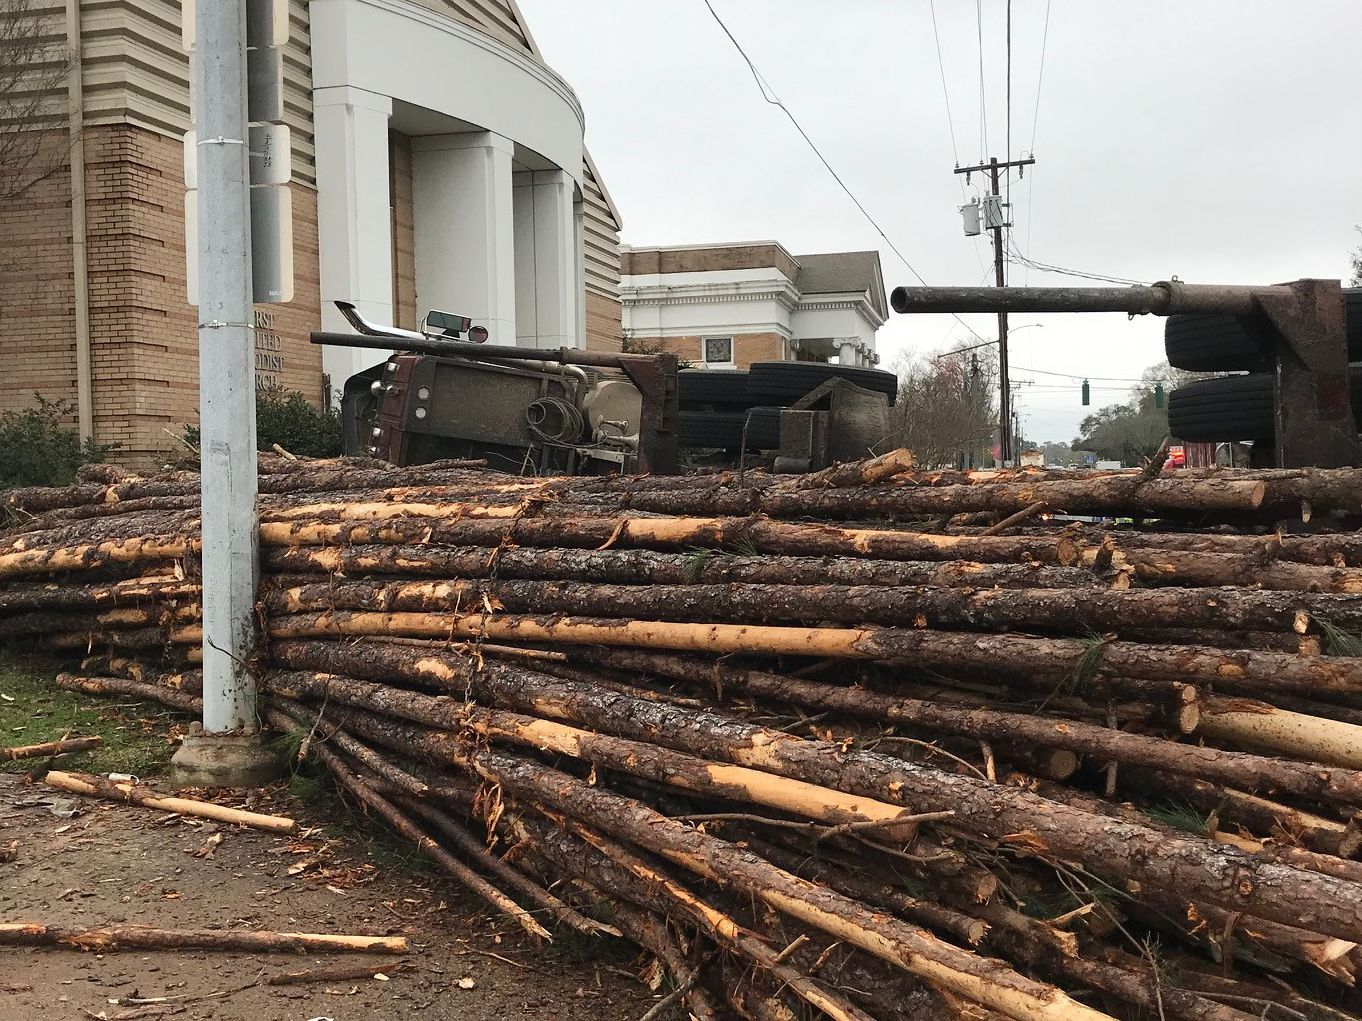 Log truck overturns on N. Pine Street